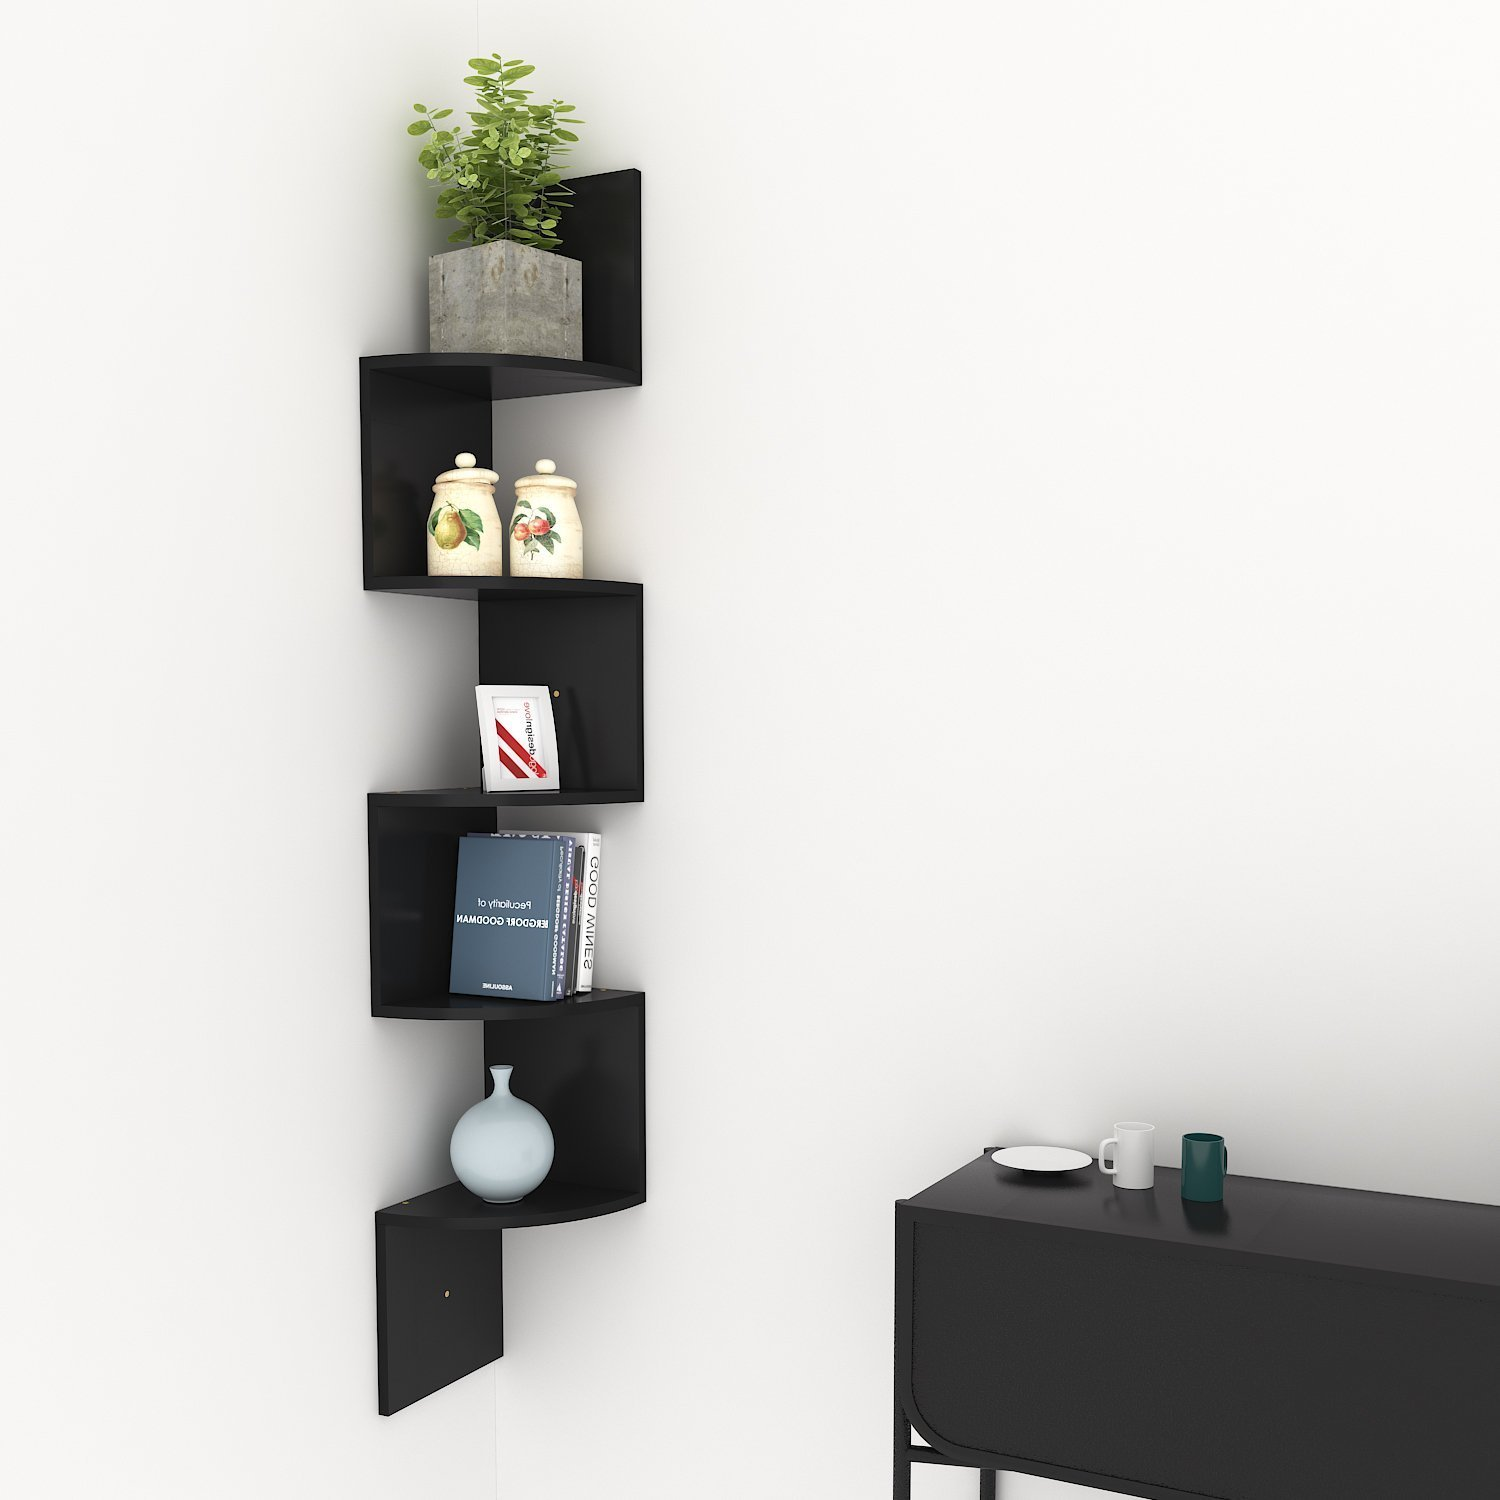 build floating corner shelves find chicago wall shelf get quotations kaluo tier mount modern display zig zag outdoor shelving unit black hanging entryway with bench timber cube